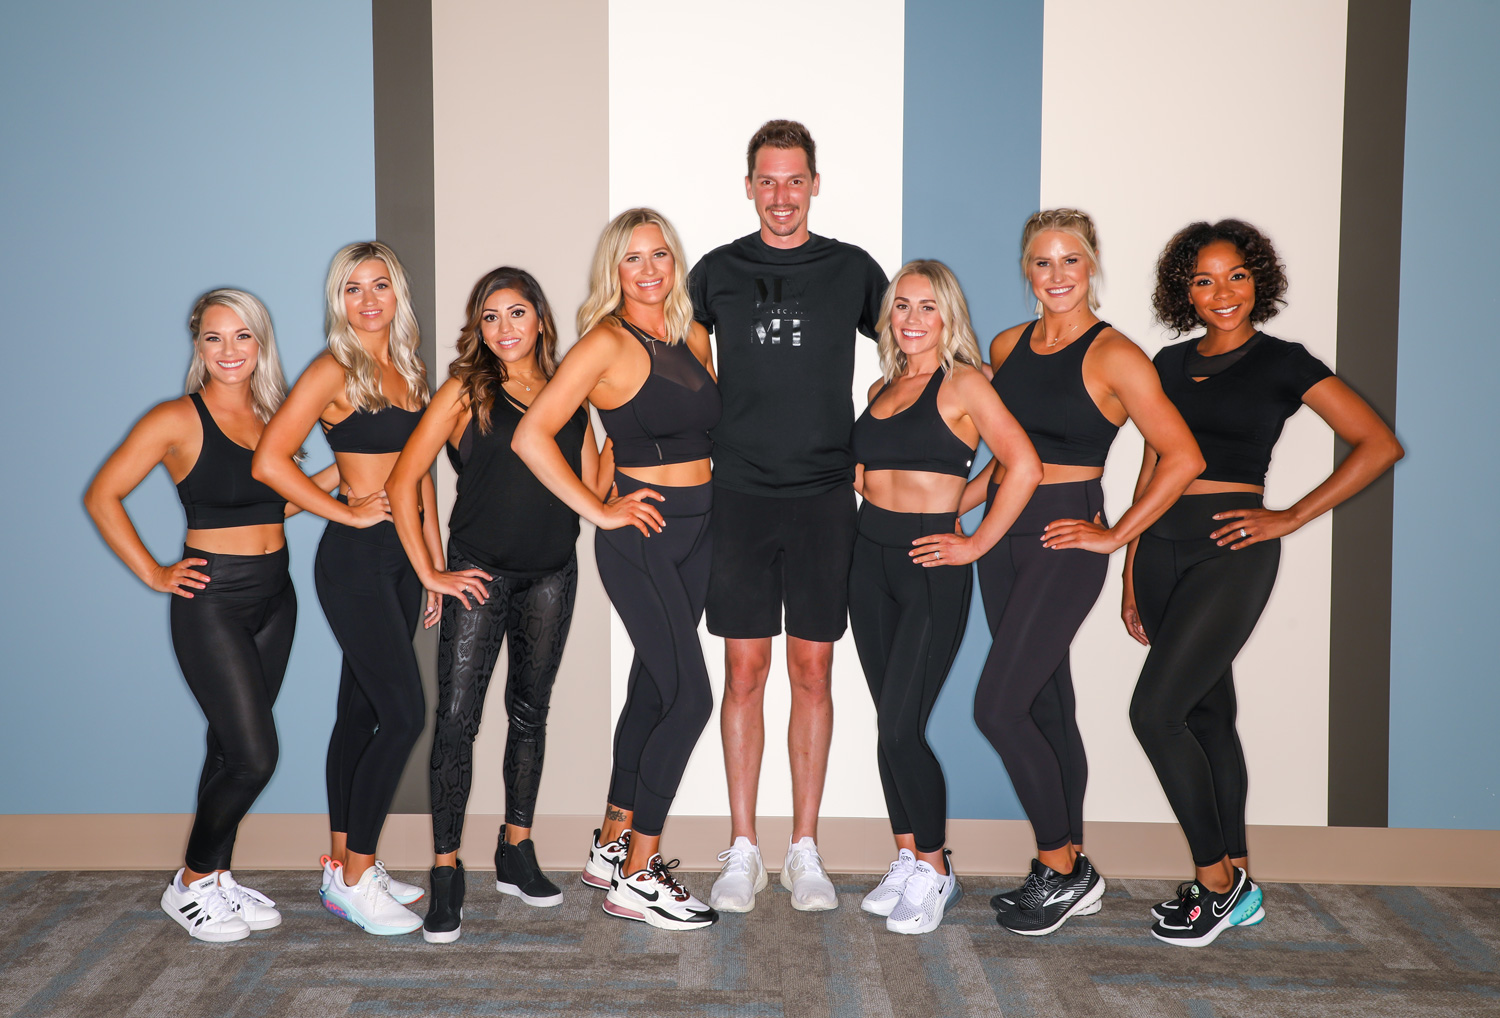 The fitness studio's staff